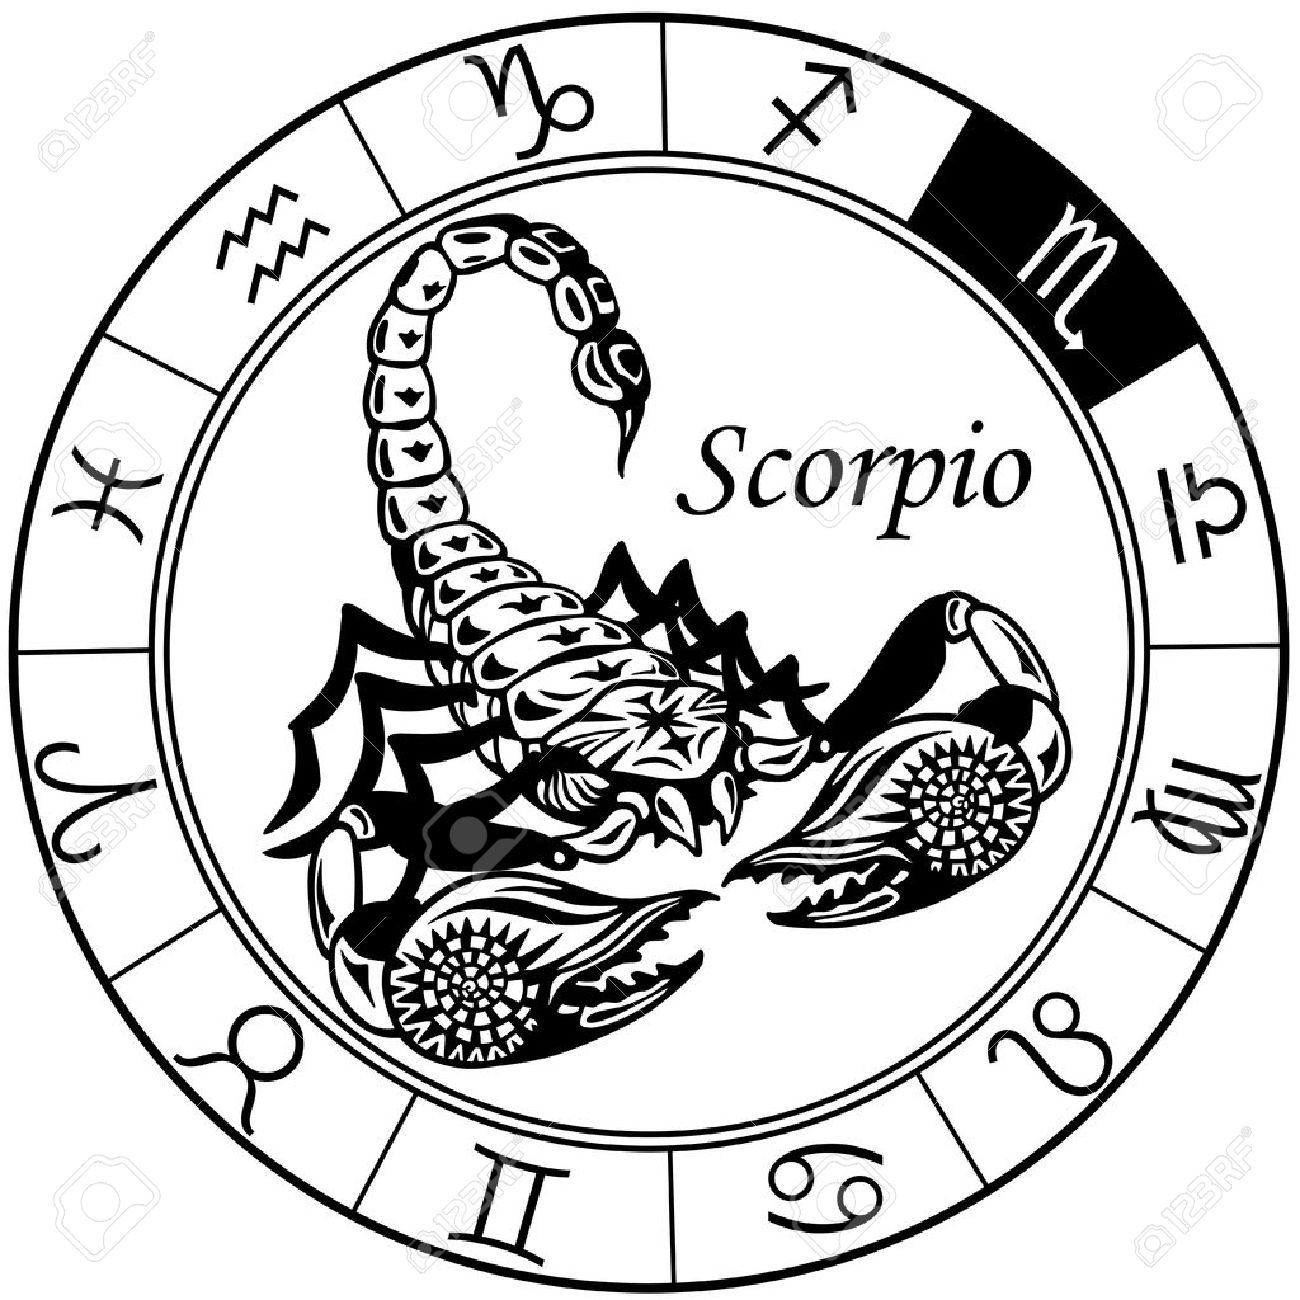 scorpion or scorpio astrological zodiac sign, black and white..